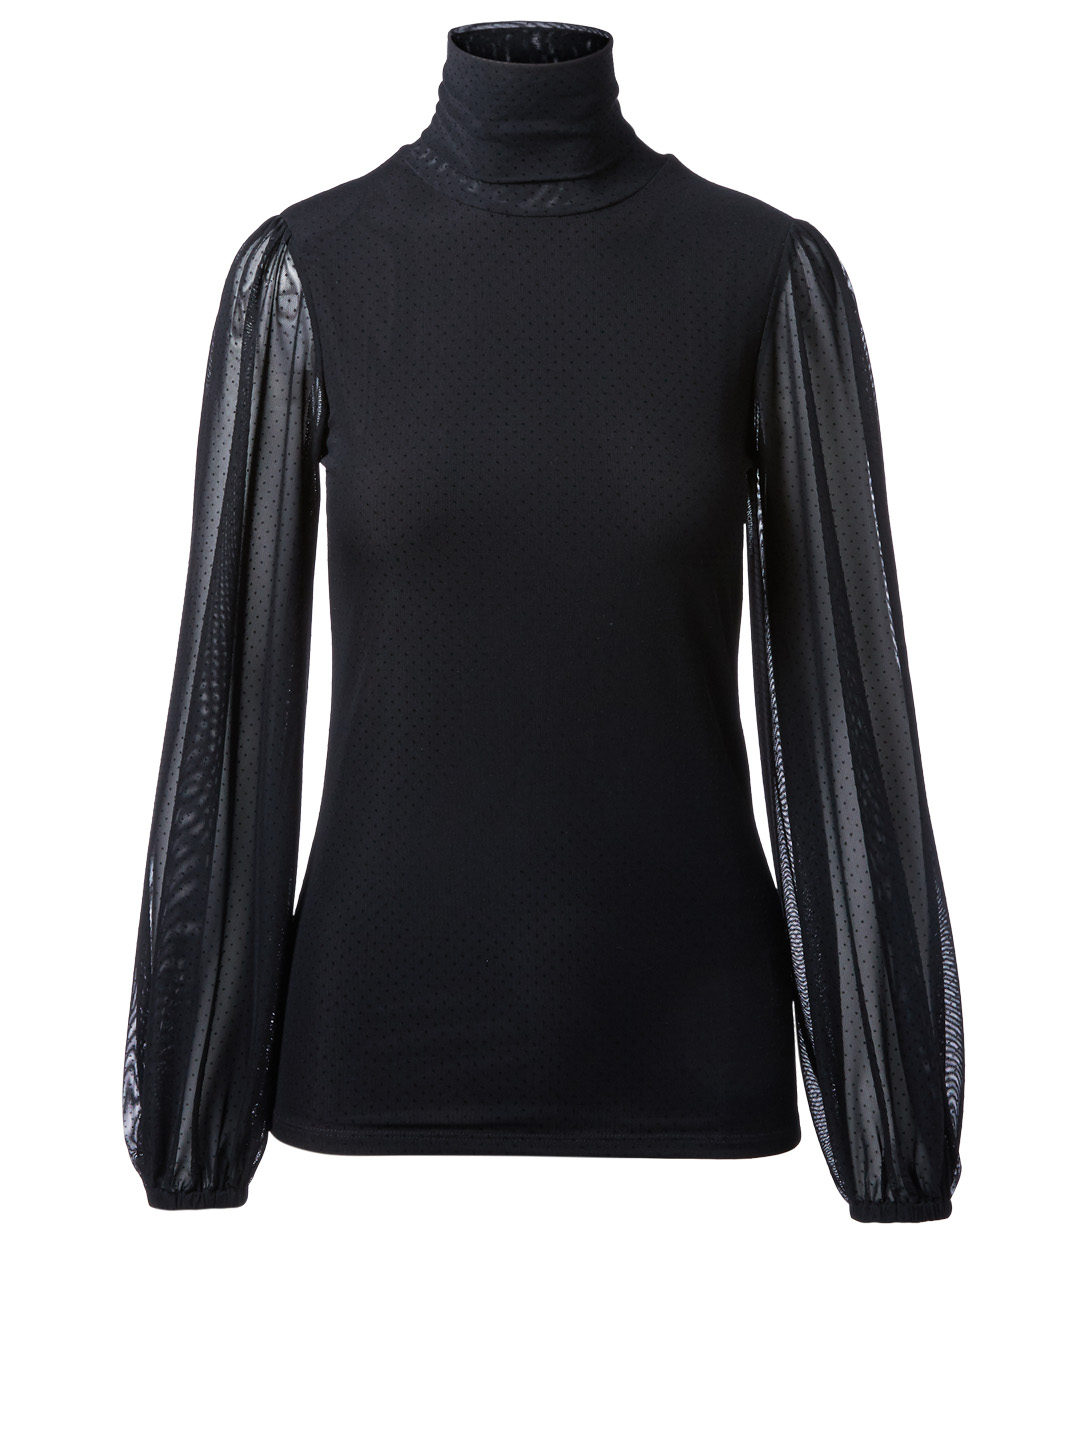 GANNI Addison Dot Mesh Turtleneck Top Women's Black